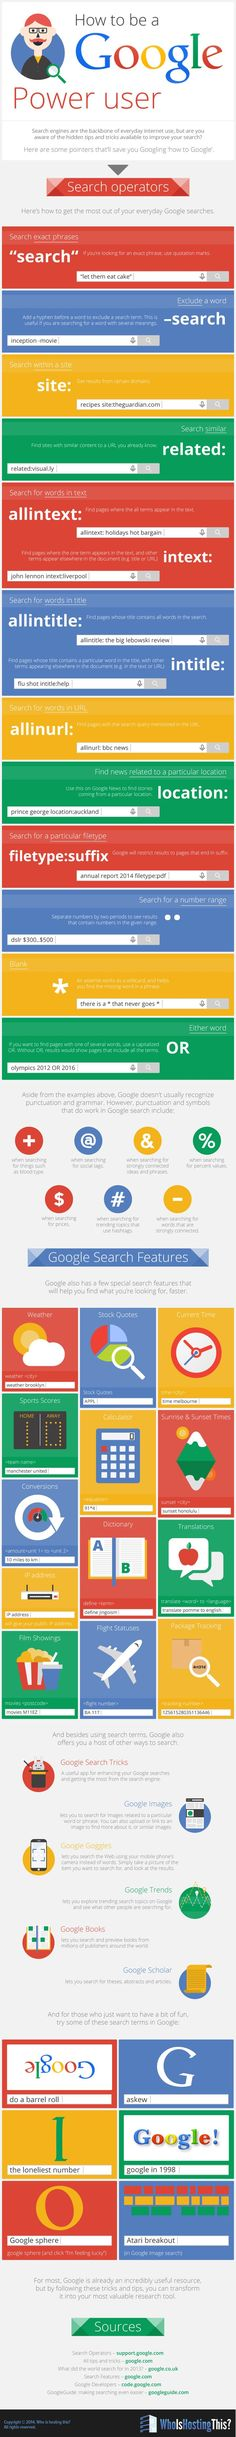 How to be a Google Power User #Infographic #HowTo #Internet #Google